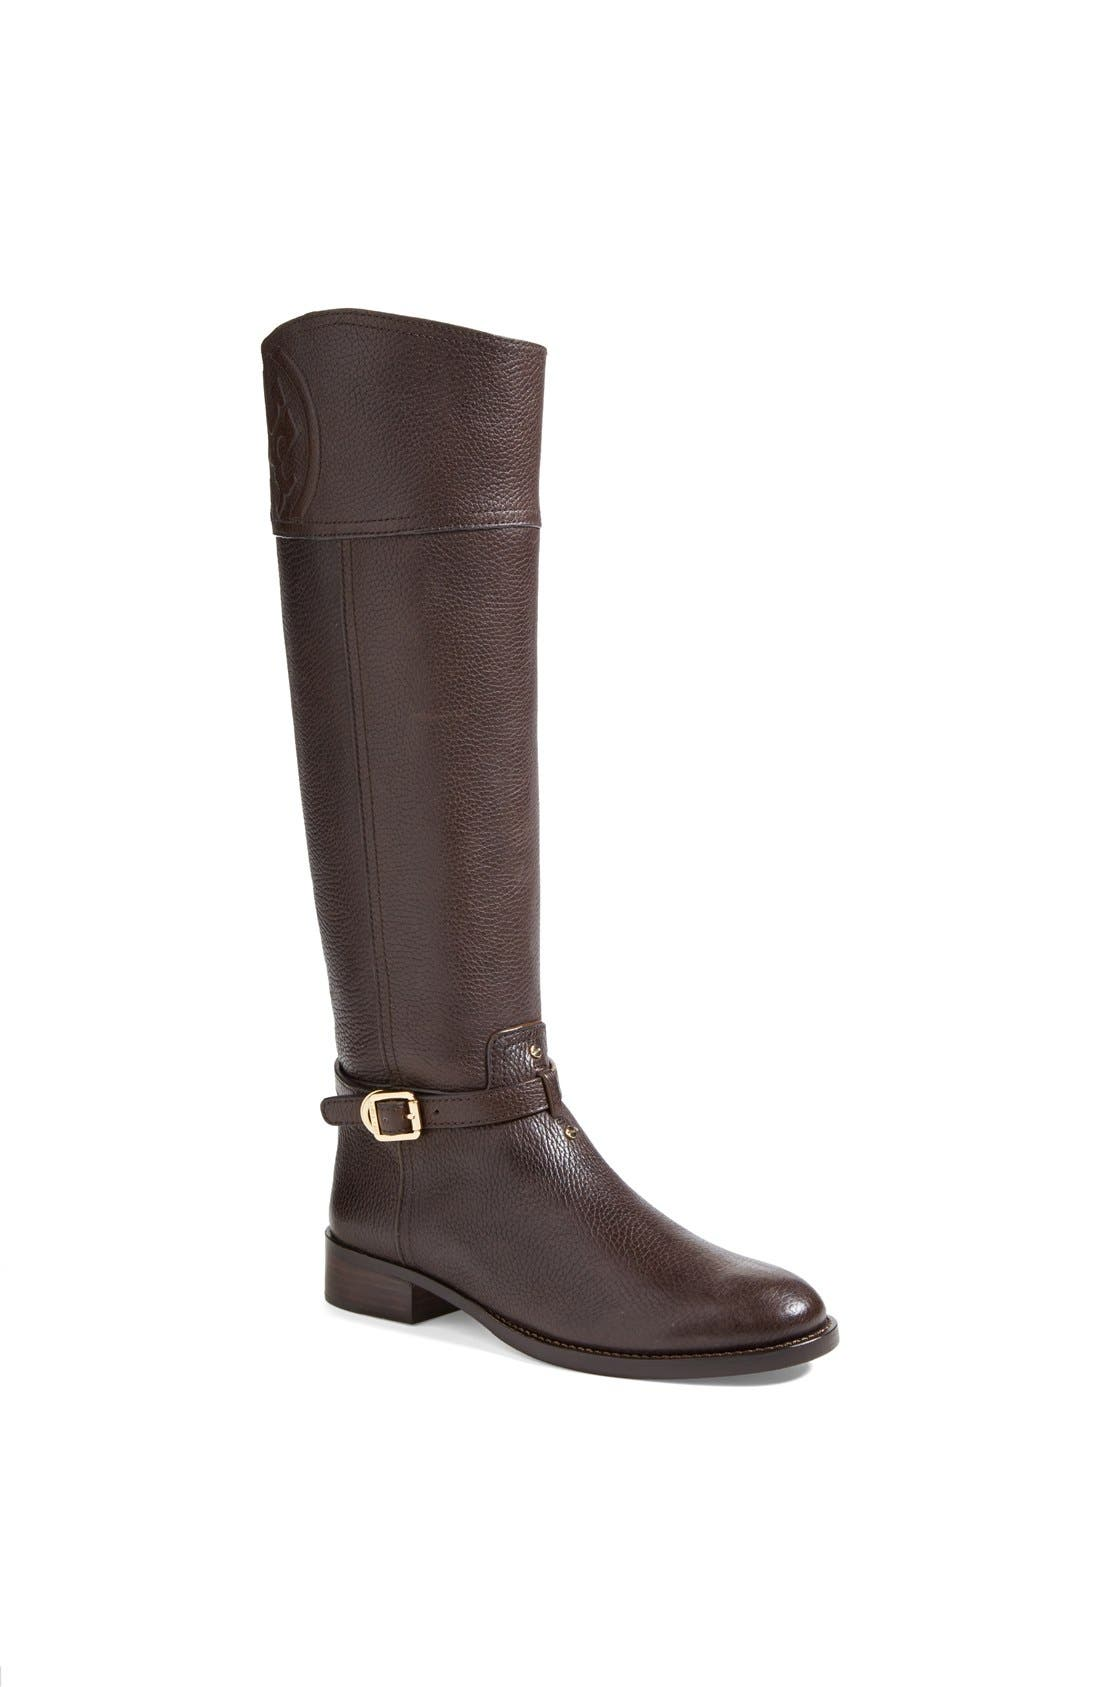 Tory Burch 'Marlene' Leather Riding Boot | Nordstrom